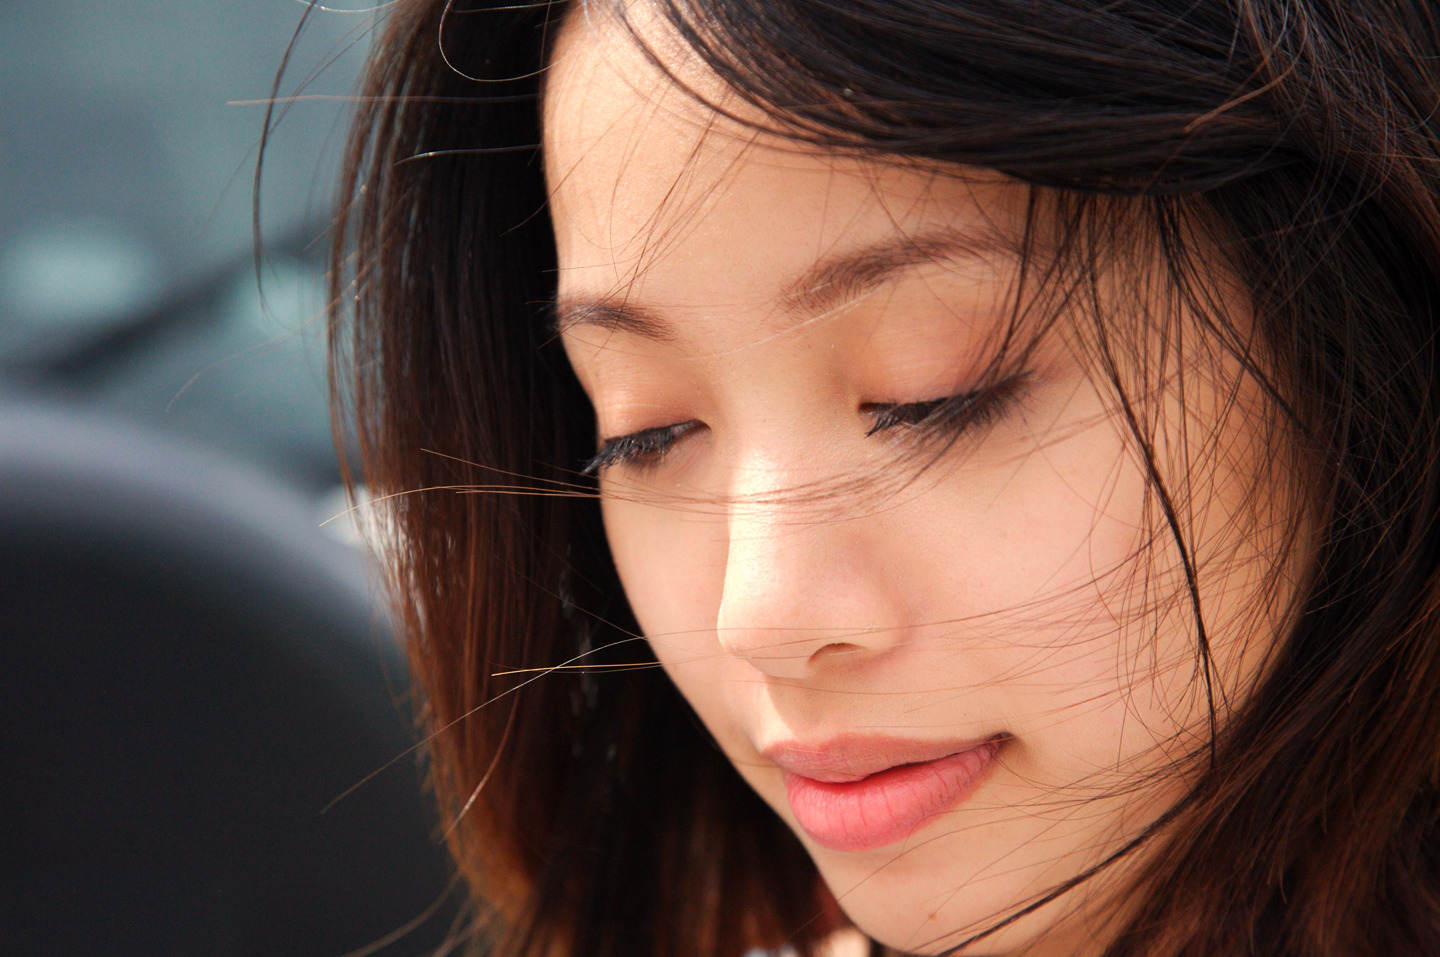 Click here for Michelle Phan YouTube Channel